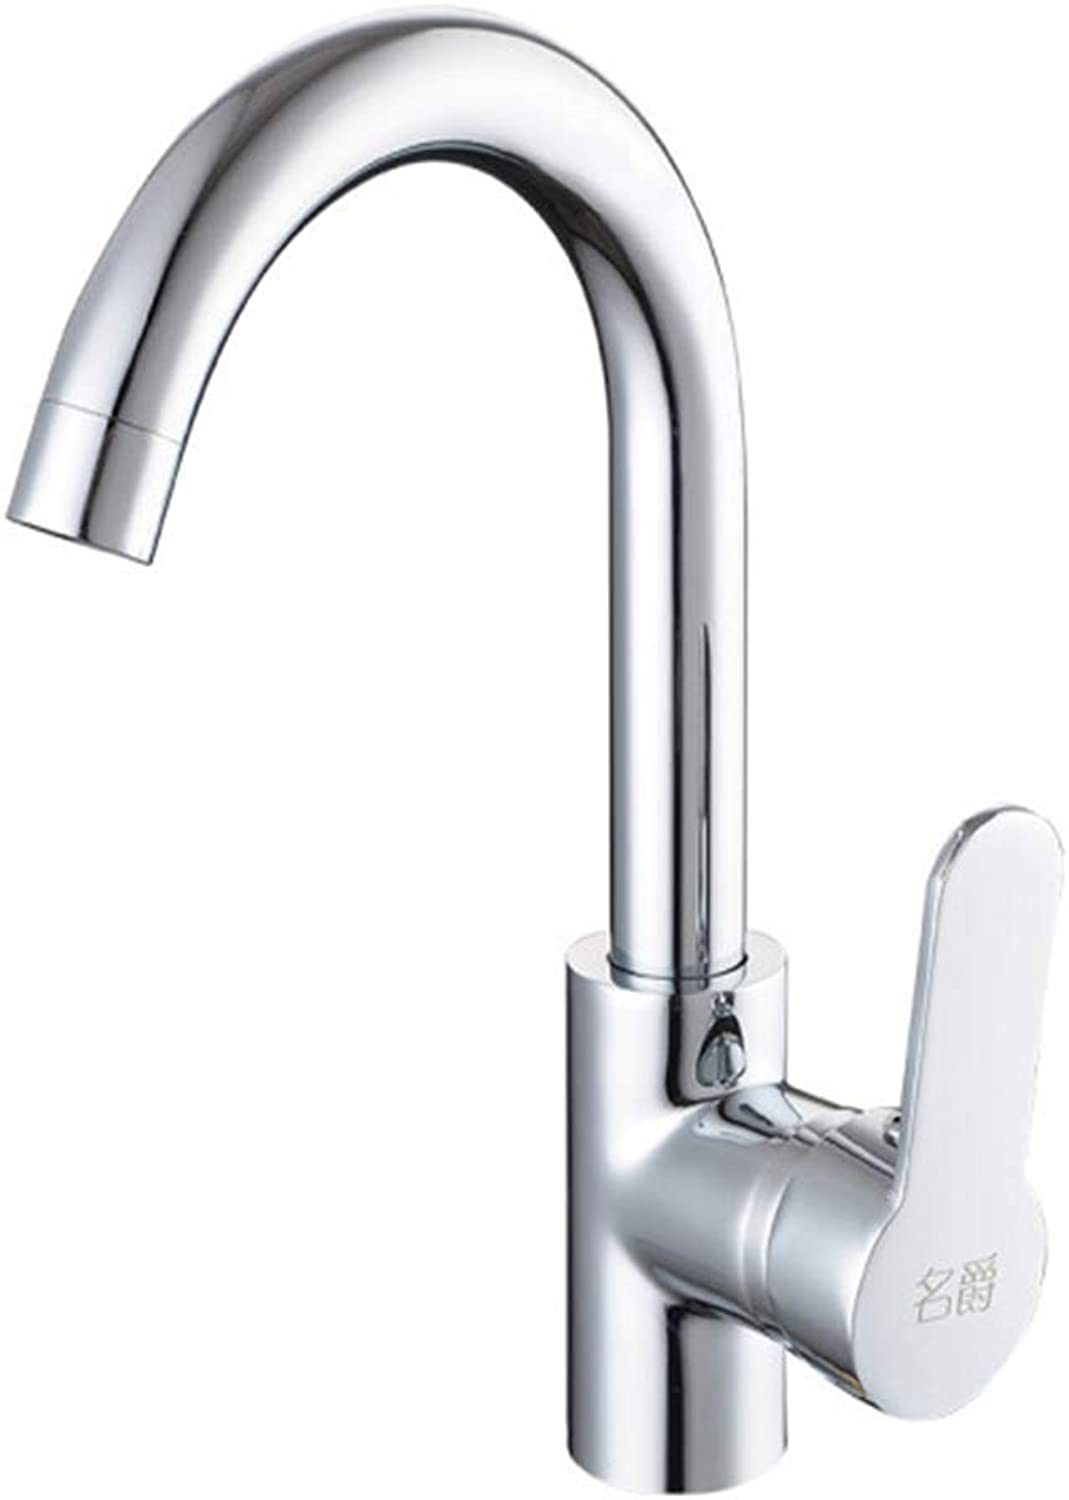 Kitchen Taps Faucet Modern Kitchen Sink Taps Stainless Steelcopper Main Face Basin Faucet 360 Degree Revolving Toilet Washbasin Cold and Hot Water Faucet